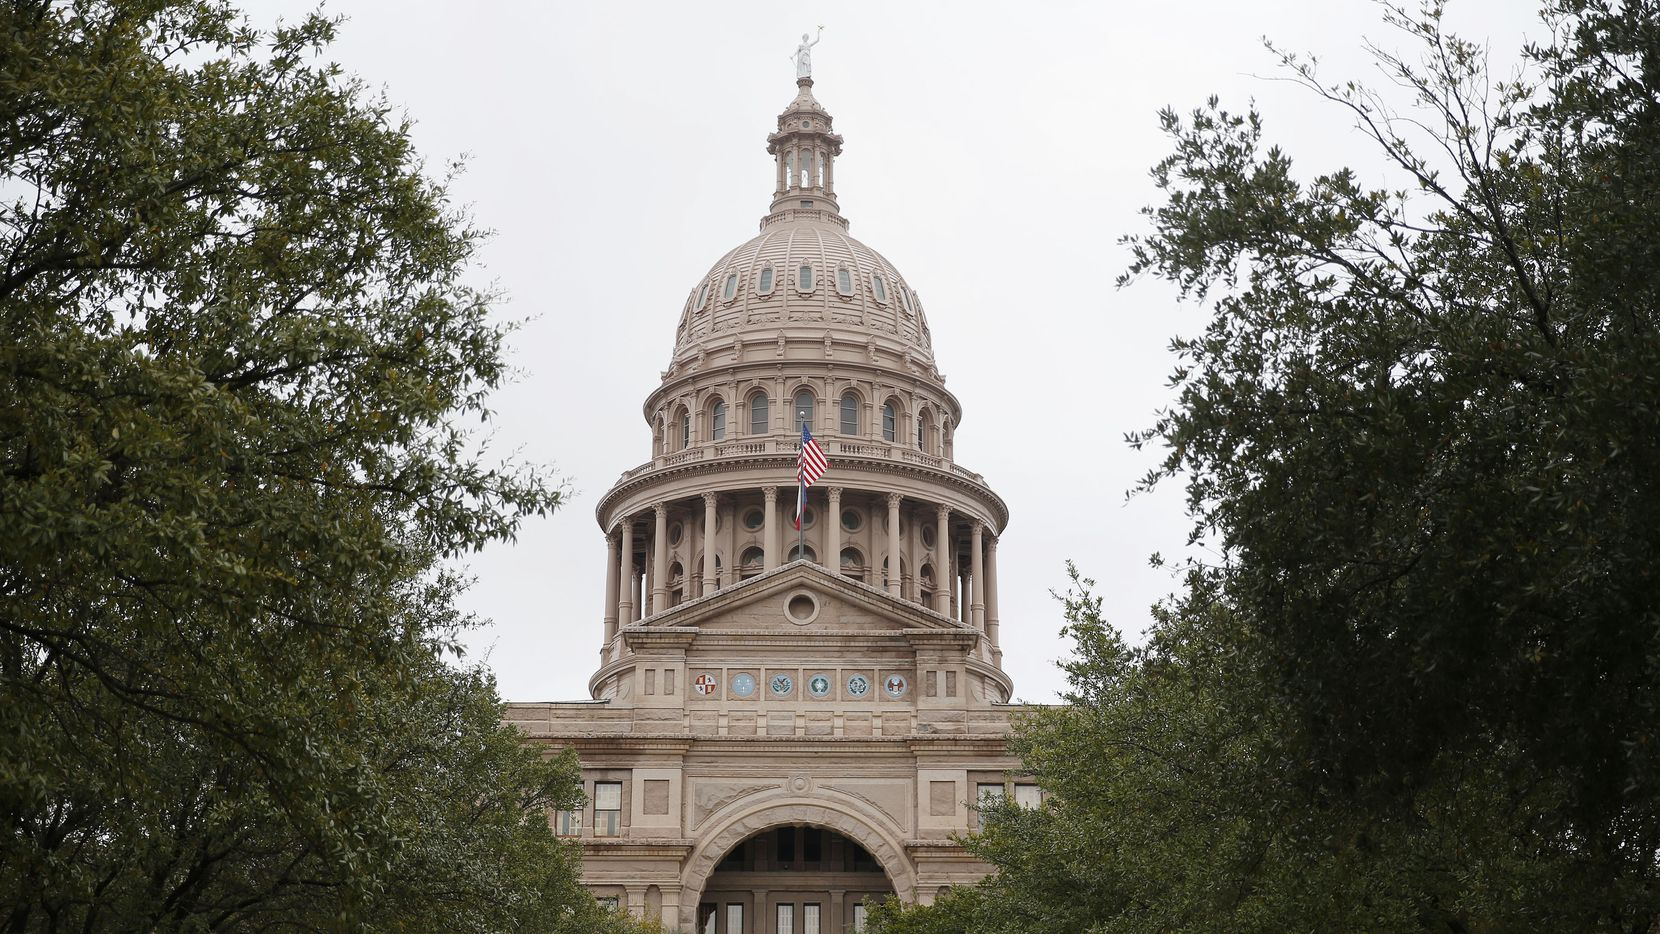 An exterior of the Texas State Capitol in Austin Wednesday February 4, 2015. (Andy Jacobsohn/The Dallas Morning News) 02082015xNEWS